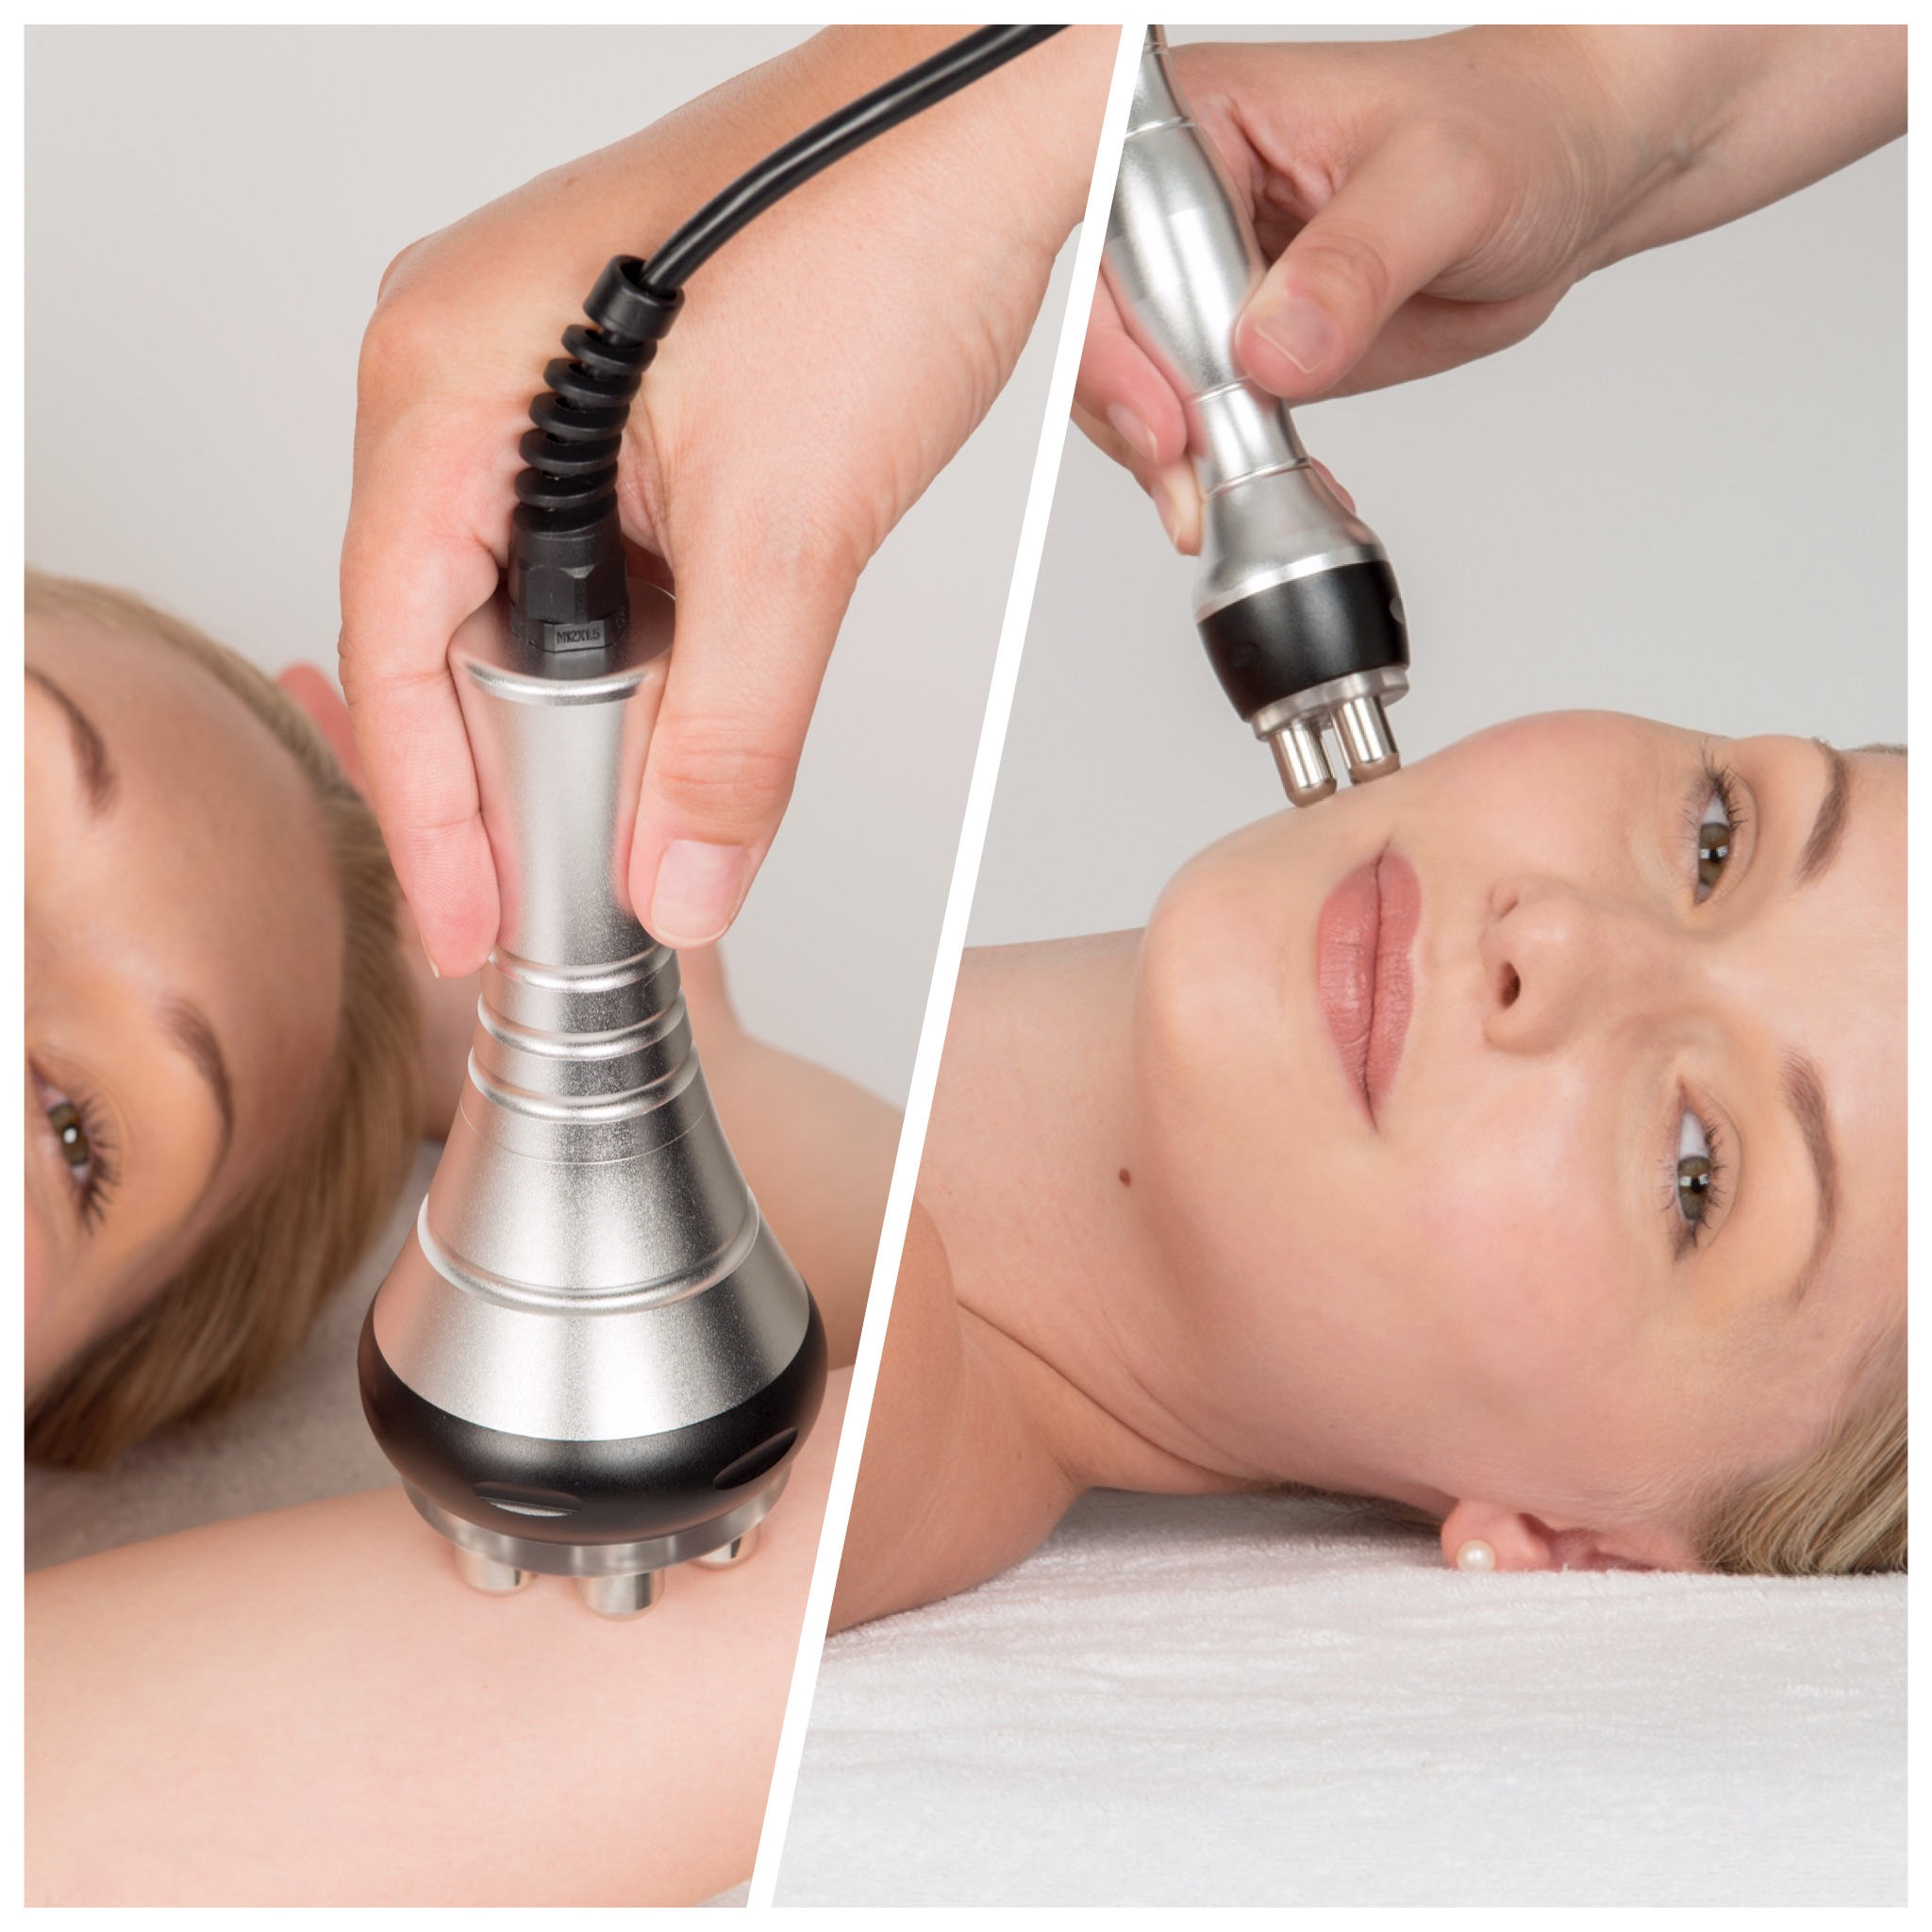 Radio Frequency (RF) Skin Tightening – Induces Tissue Remodelling & Production Of New Collagen & Elastin! 2